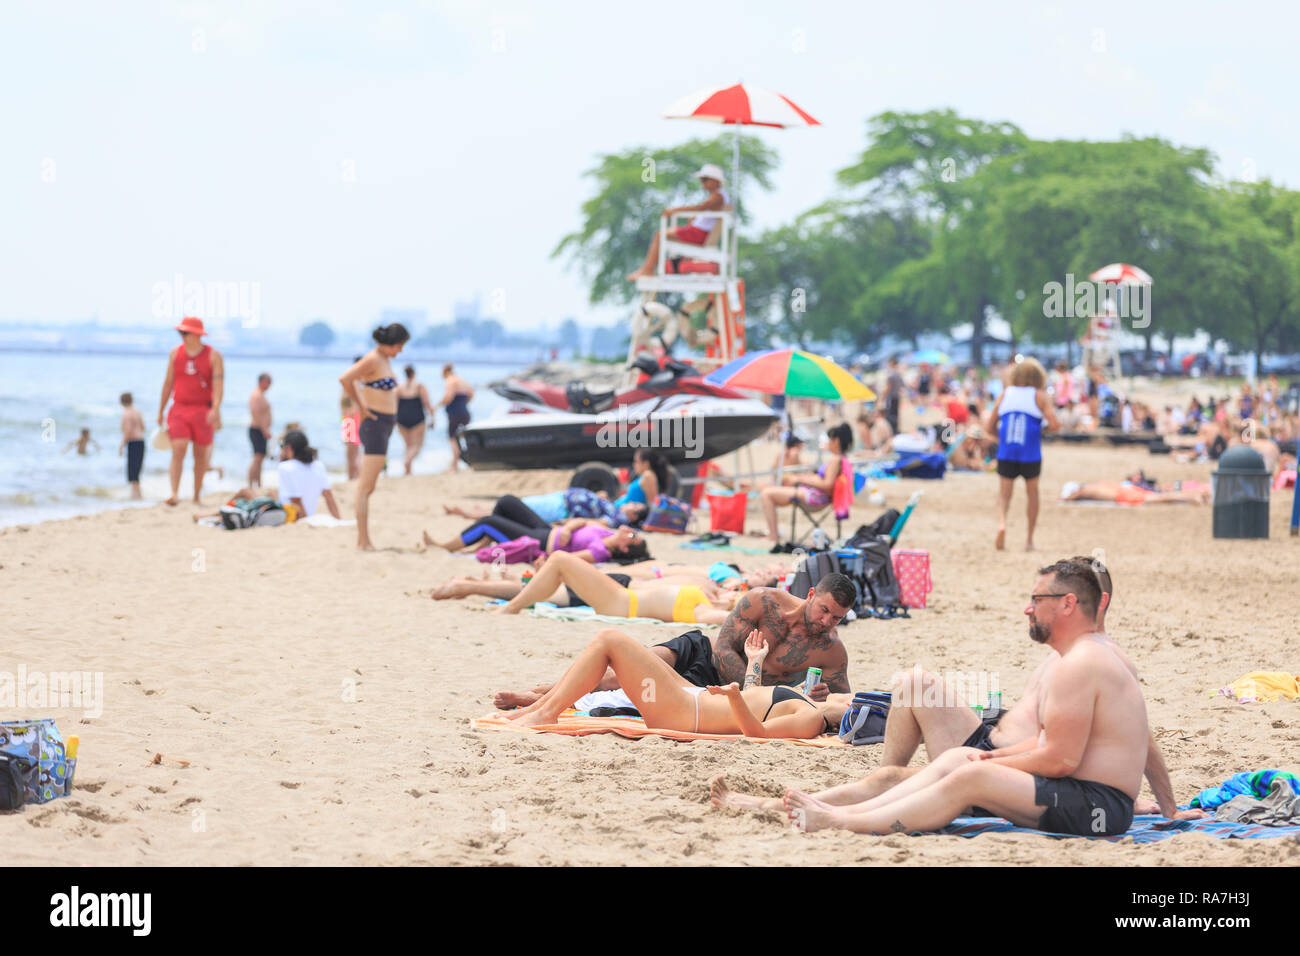 crowds of people fill a beach on a hot summer day - Stock Image